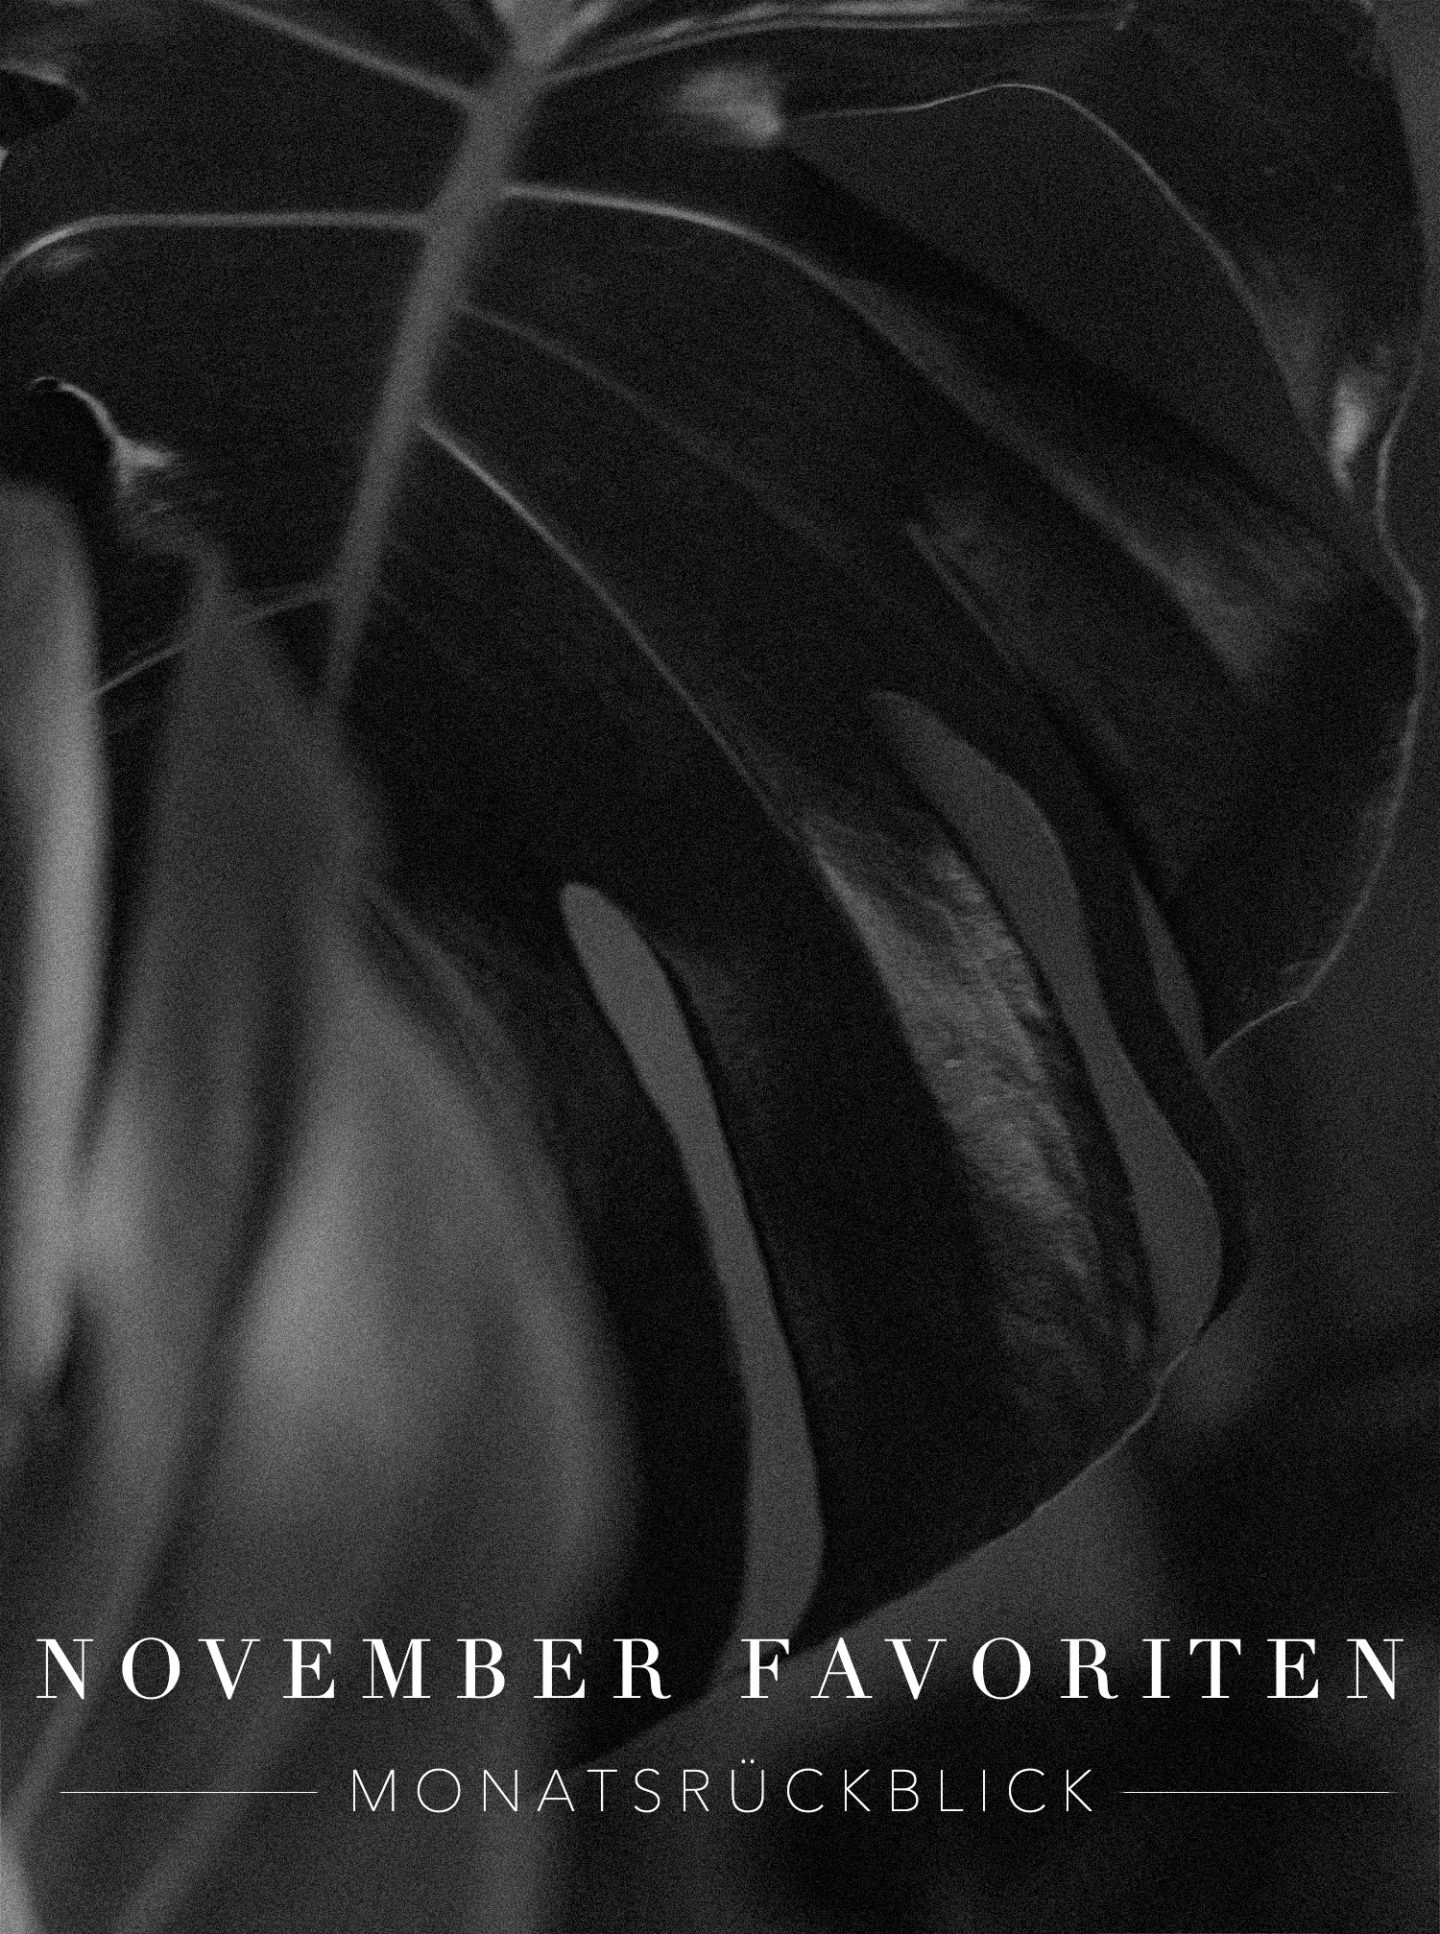 November Favoriten & Monatsrückblick